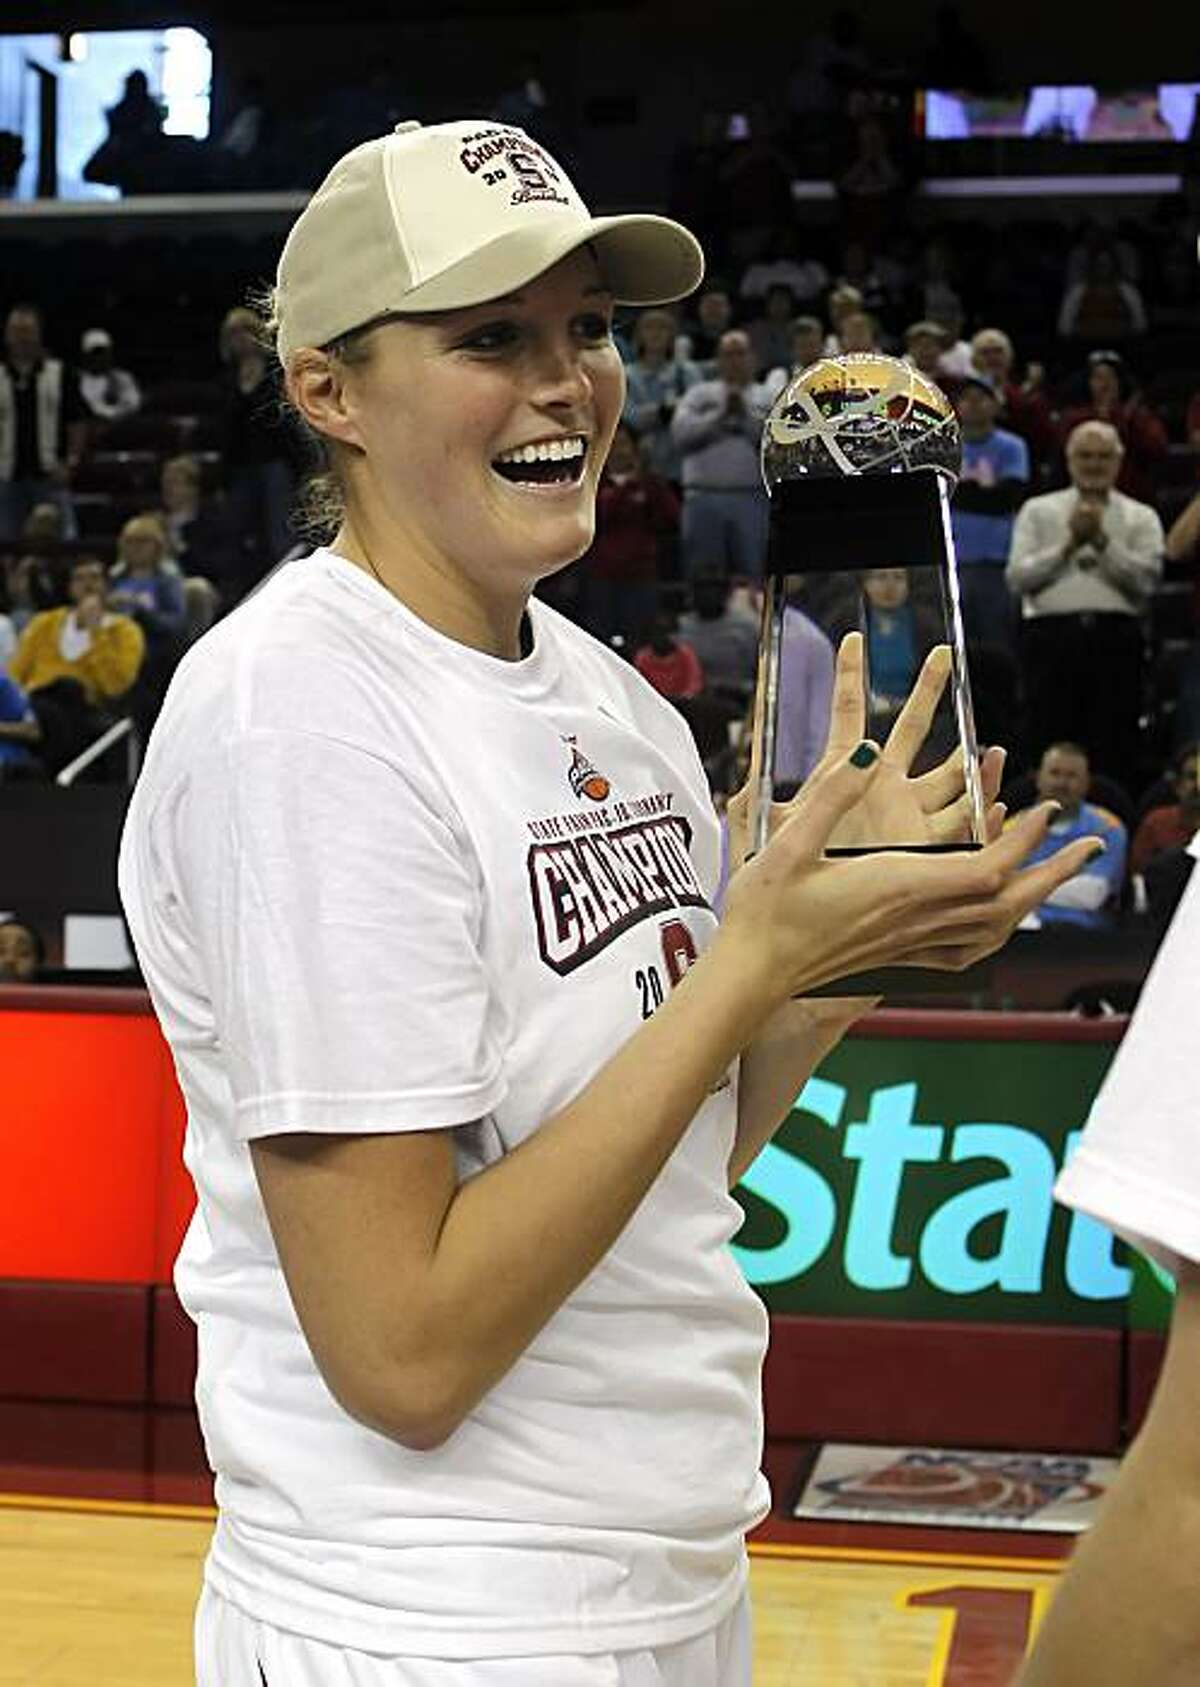 Stanford center Jayne Appel holds up the trophy after Stanford beat UCLA 70-46 in an NCAA college basketball game in the finals of the Pac-10 women's basketball tournament Sunday, March 14, 2010, in Los Angeles.